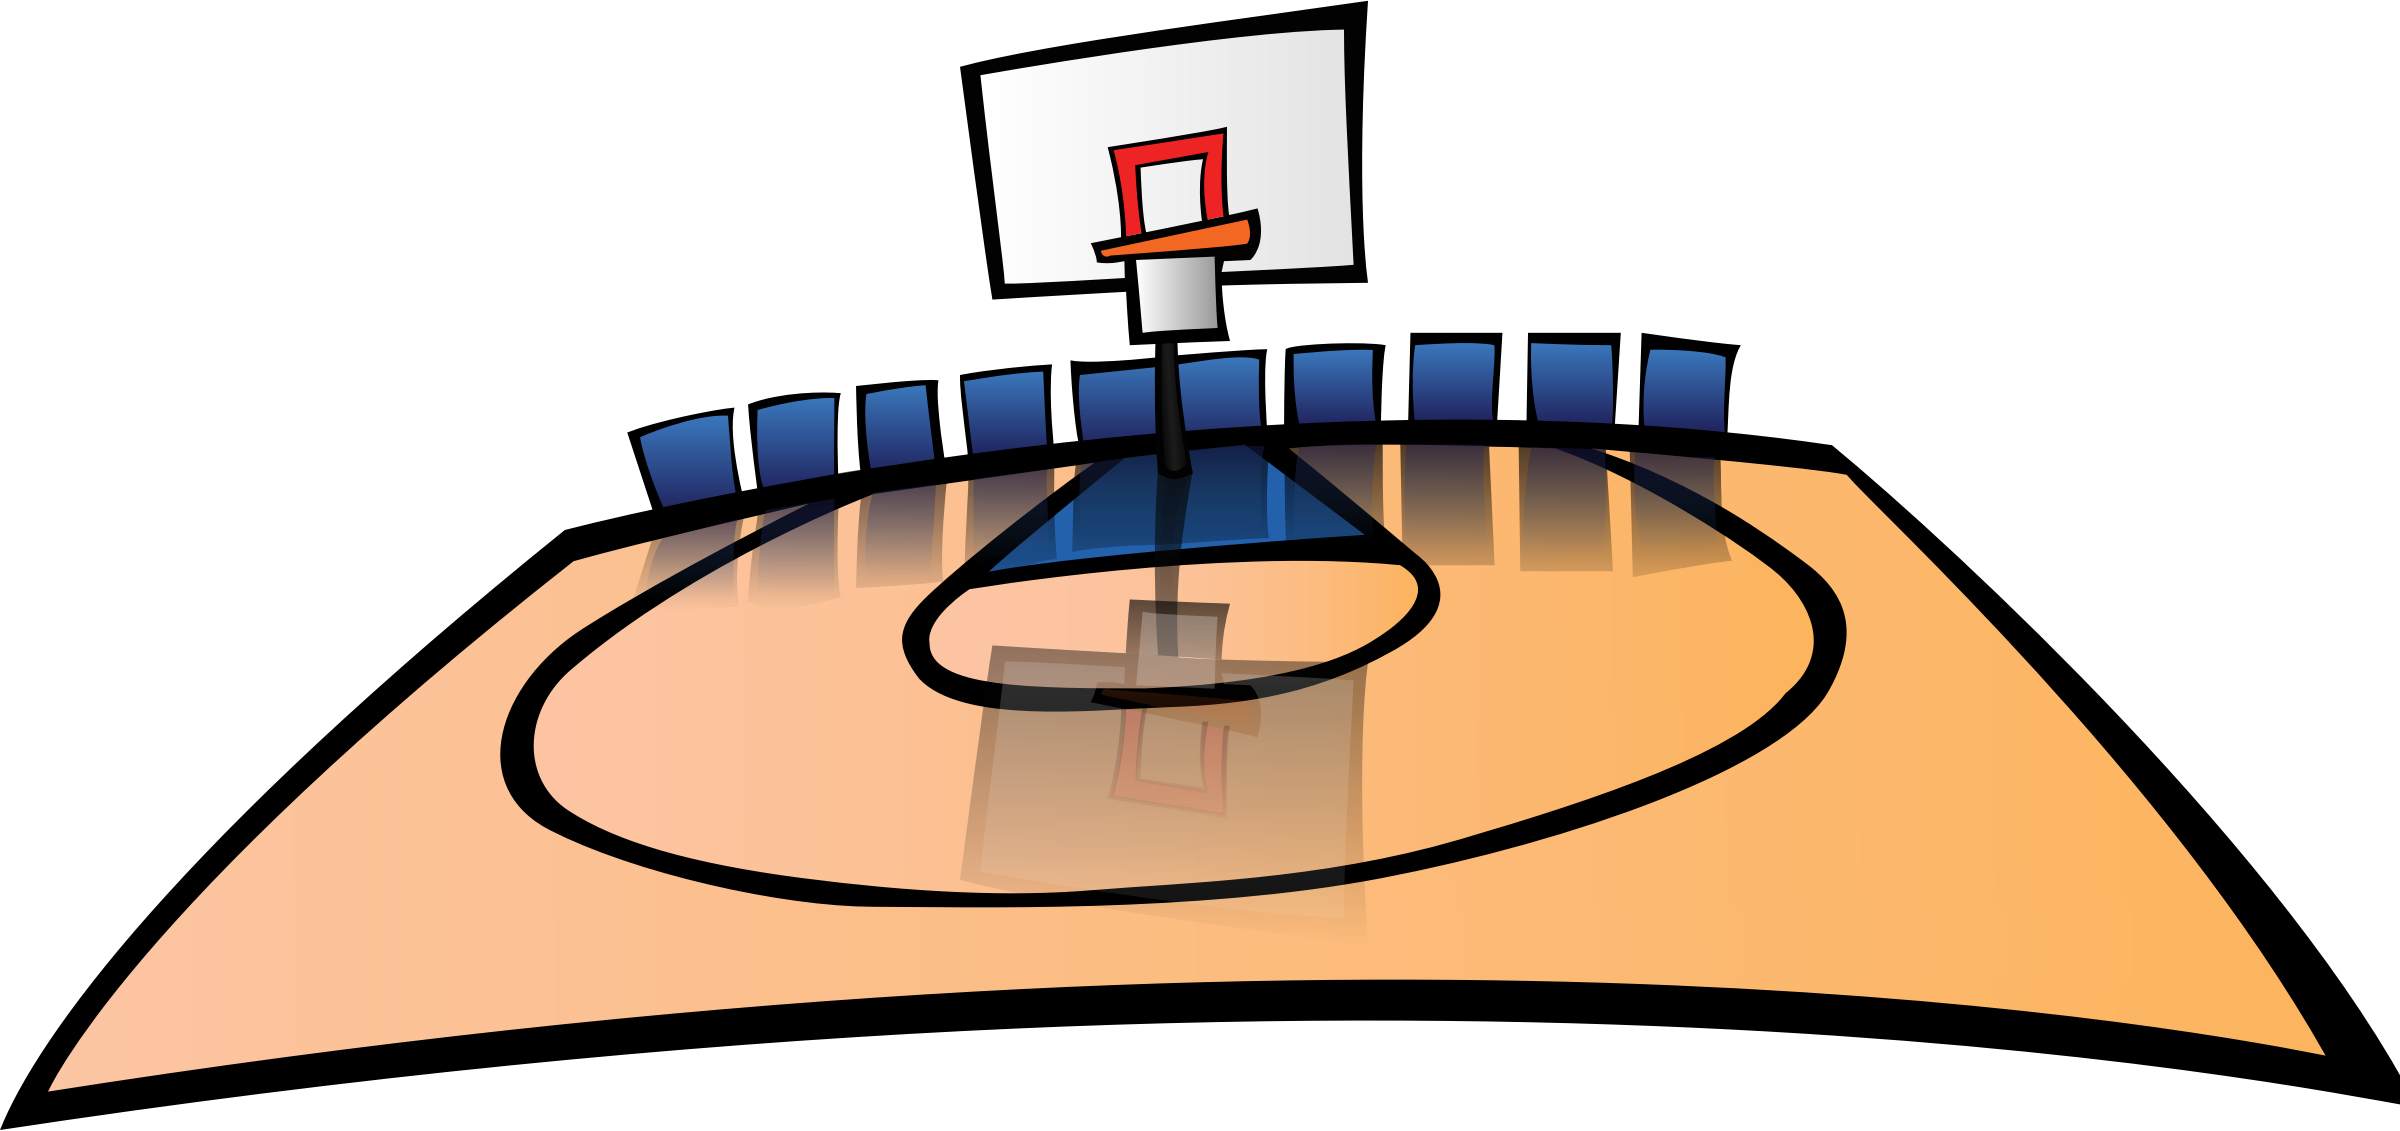 2400x1131 Top 69 Basketball Clip Art